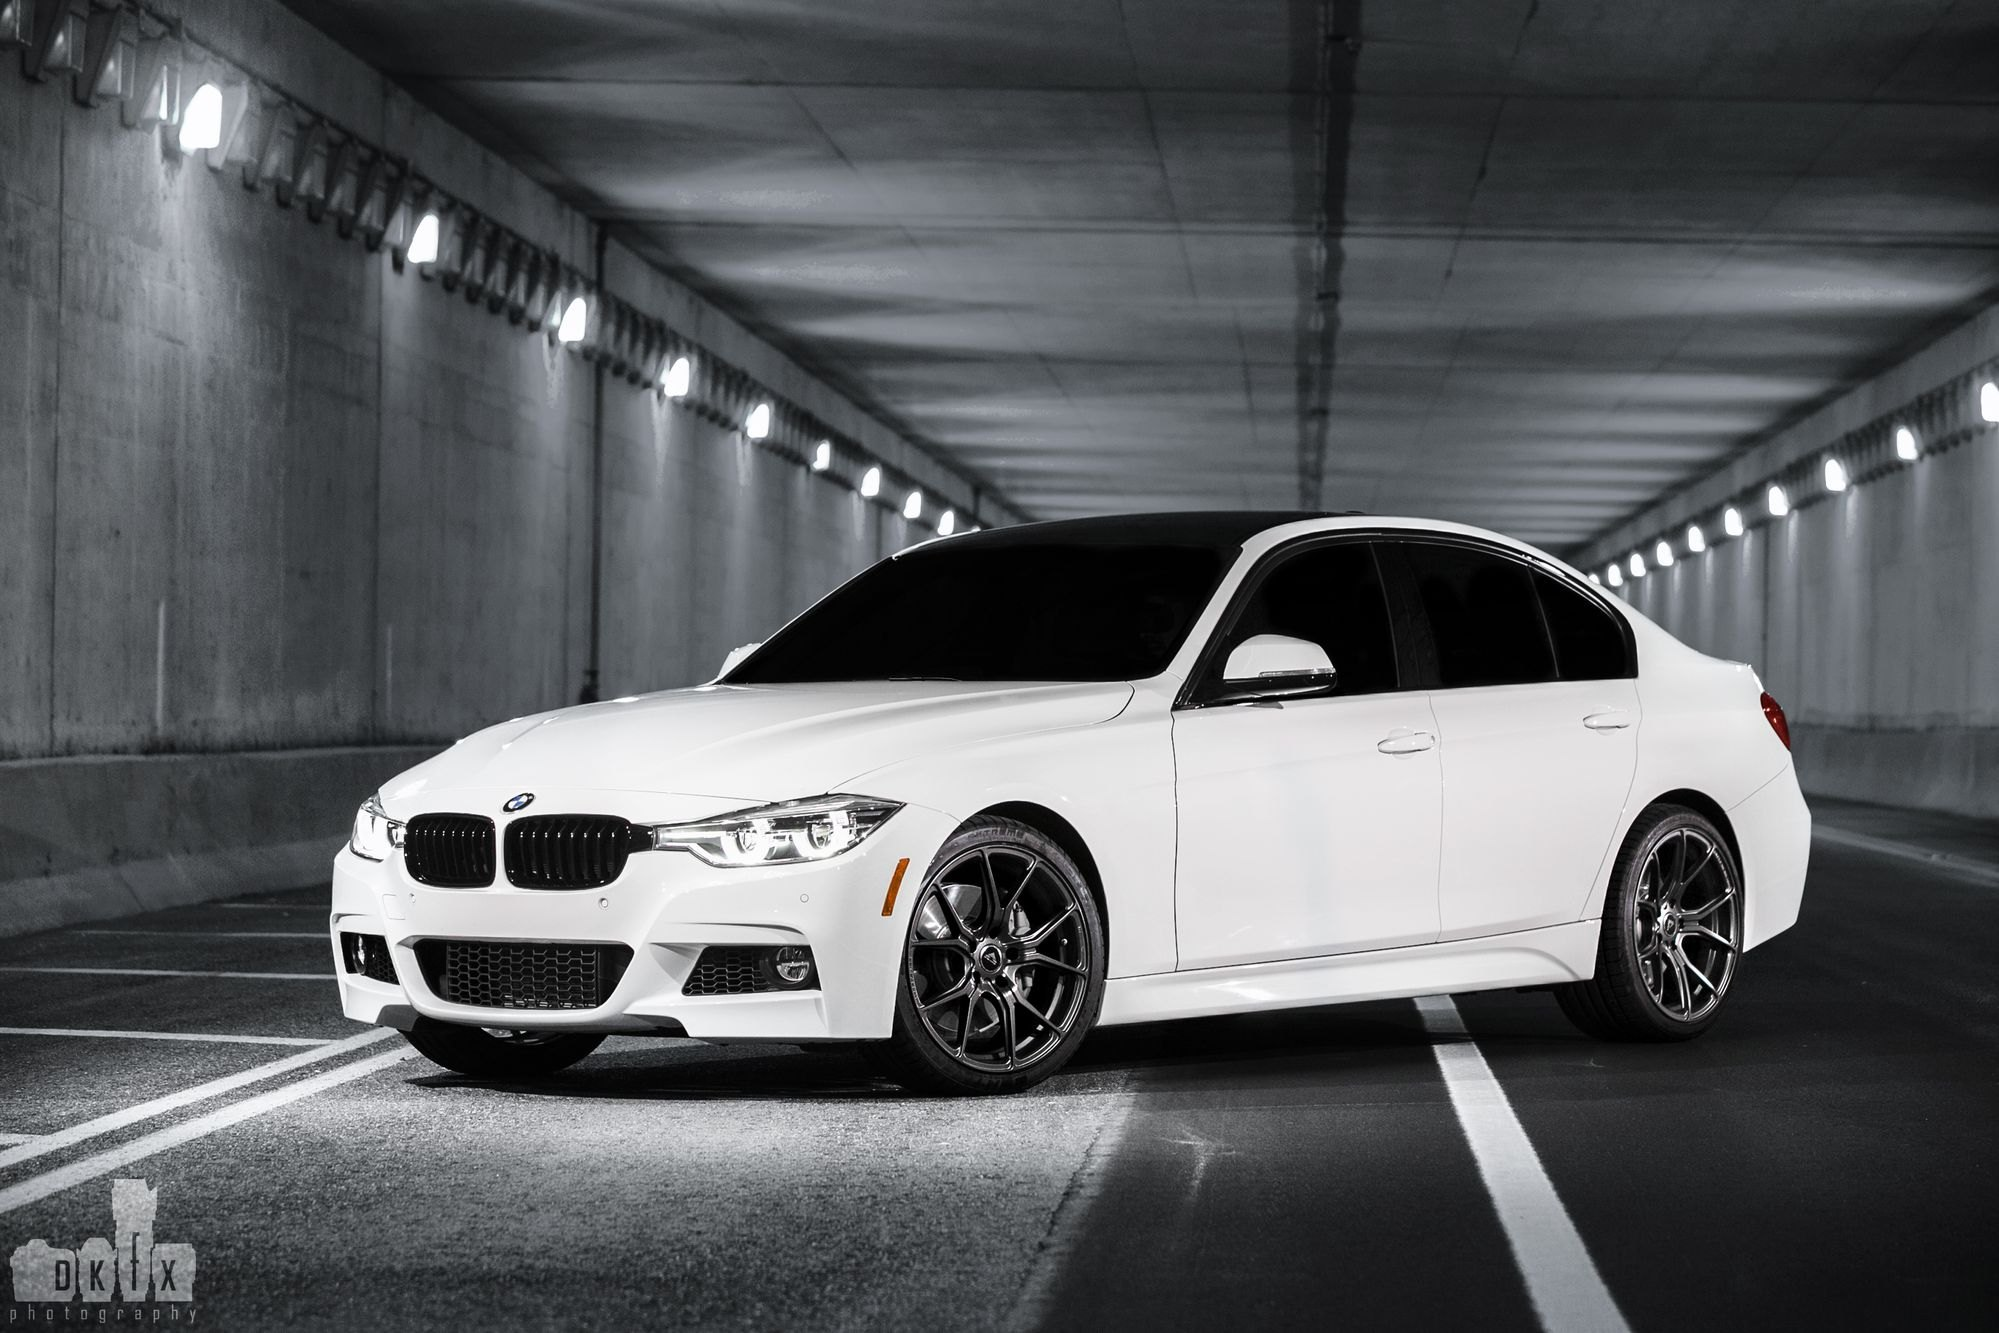 Front Bumper With Fog Lights On White BMW 3 Series